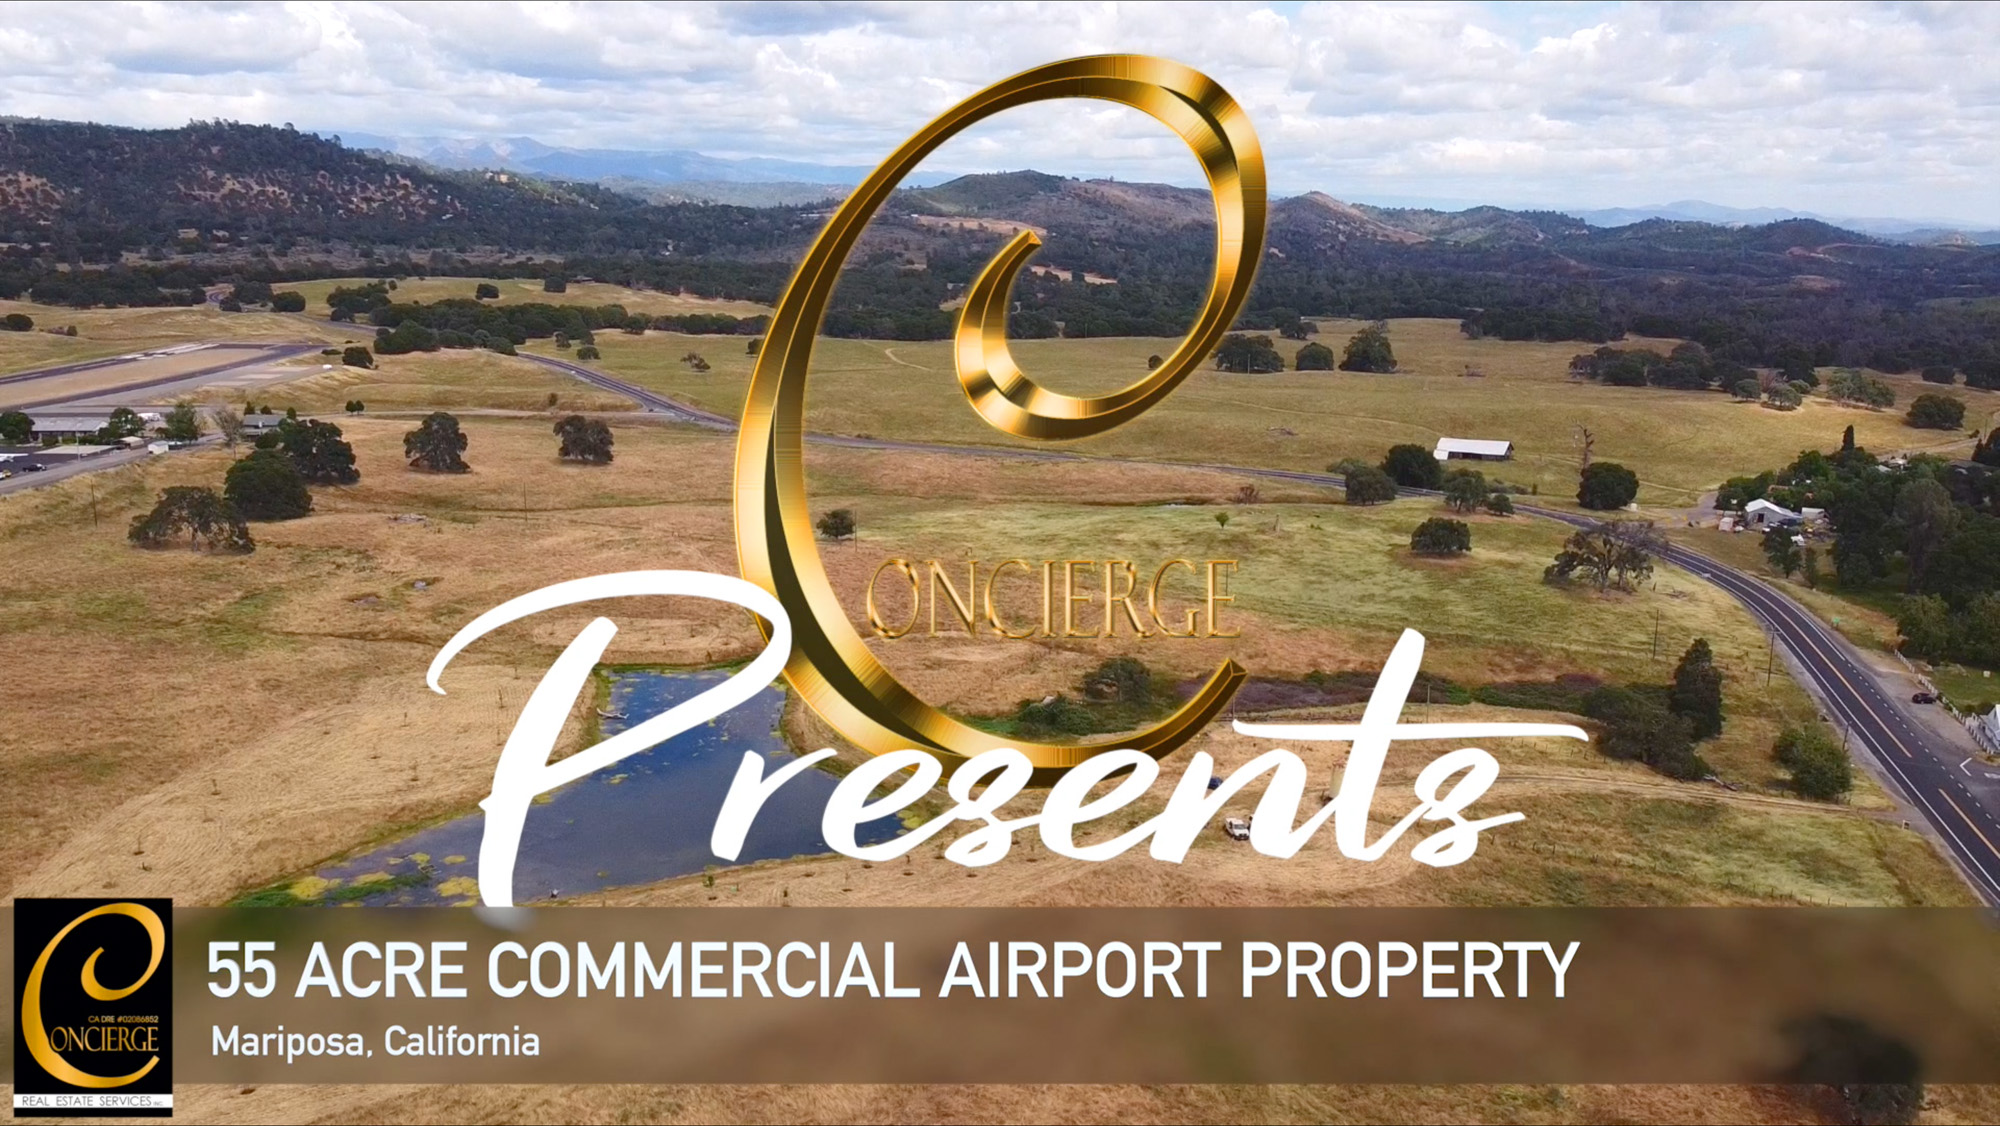 Concierge Presents... 55 Acre Commercial Property near Airport